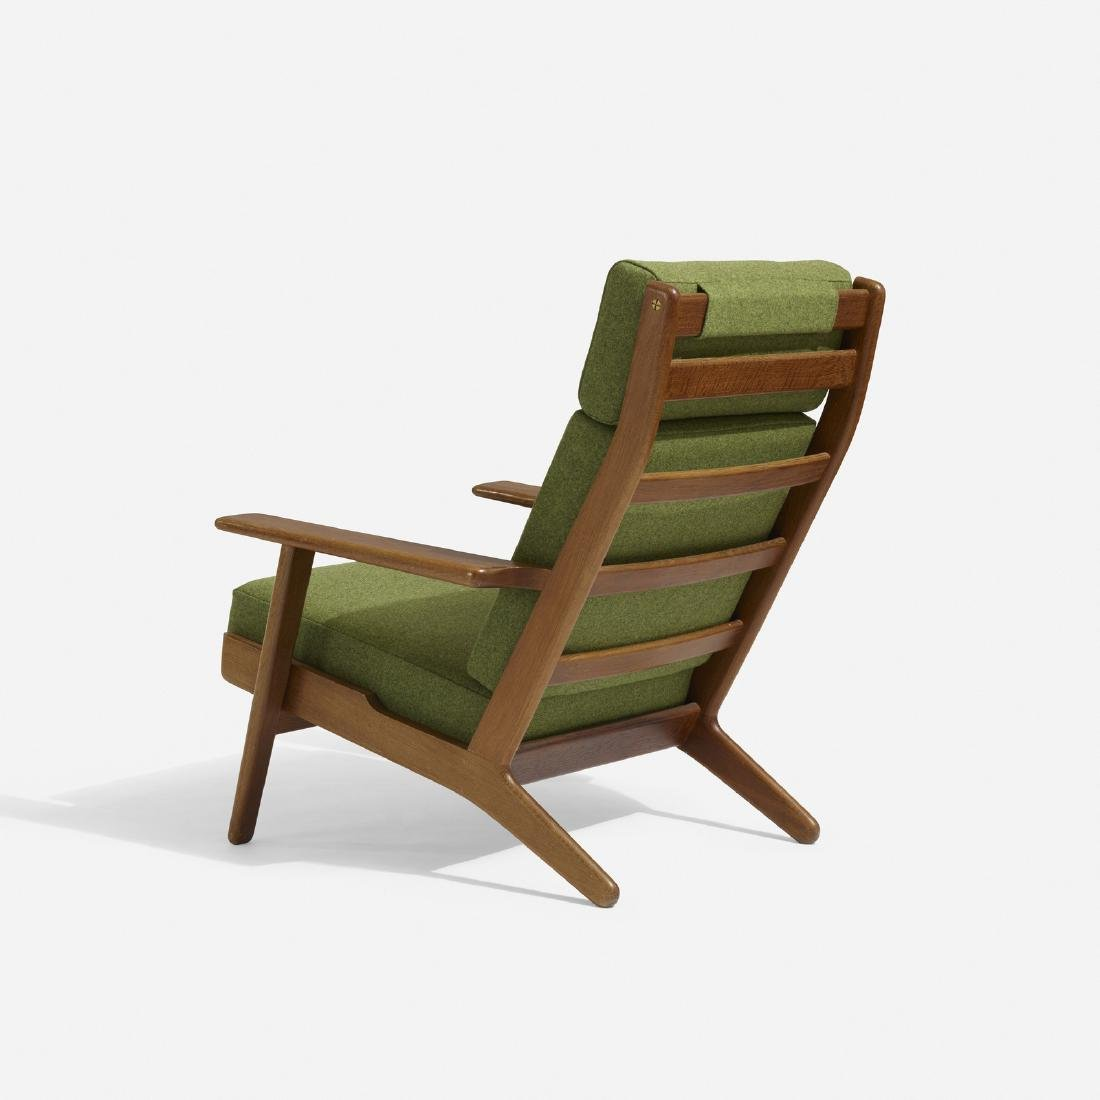 Hans J. Wegner, lounge chair, model GE290-A - 2